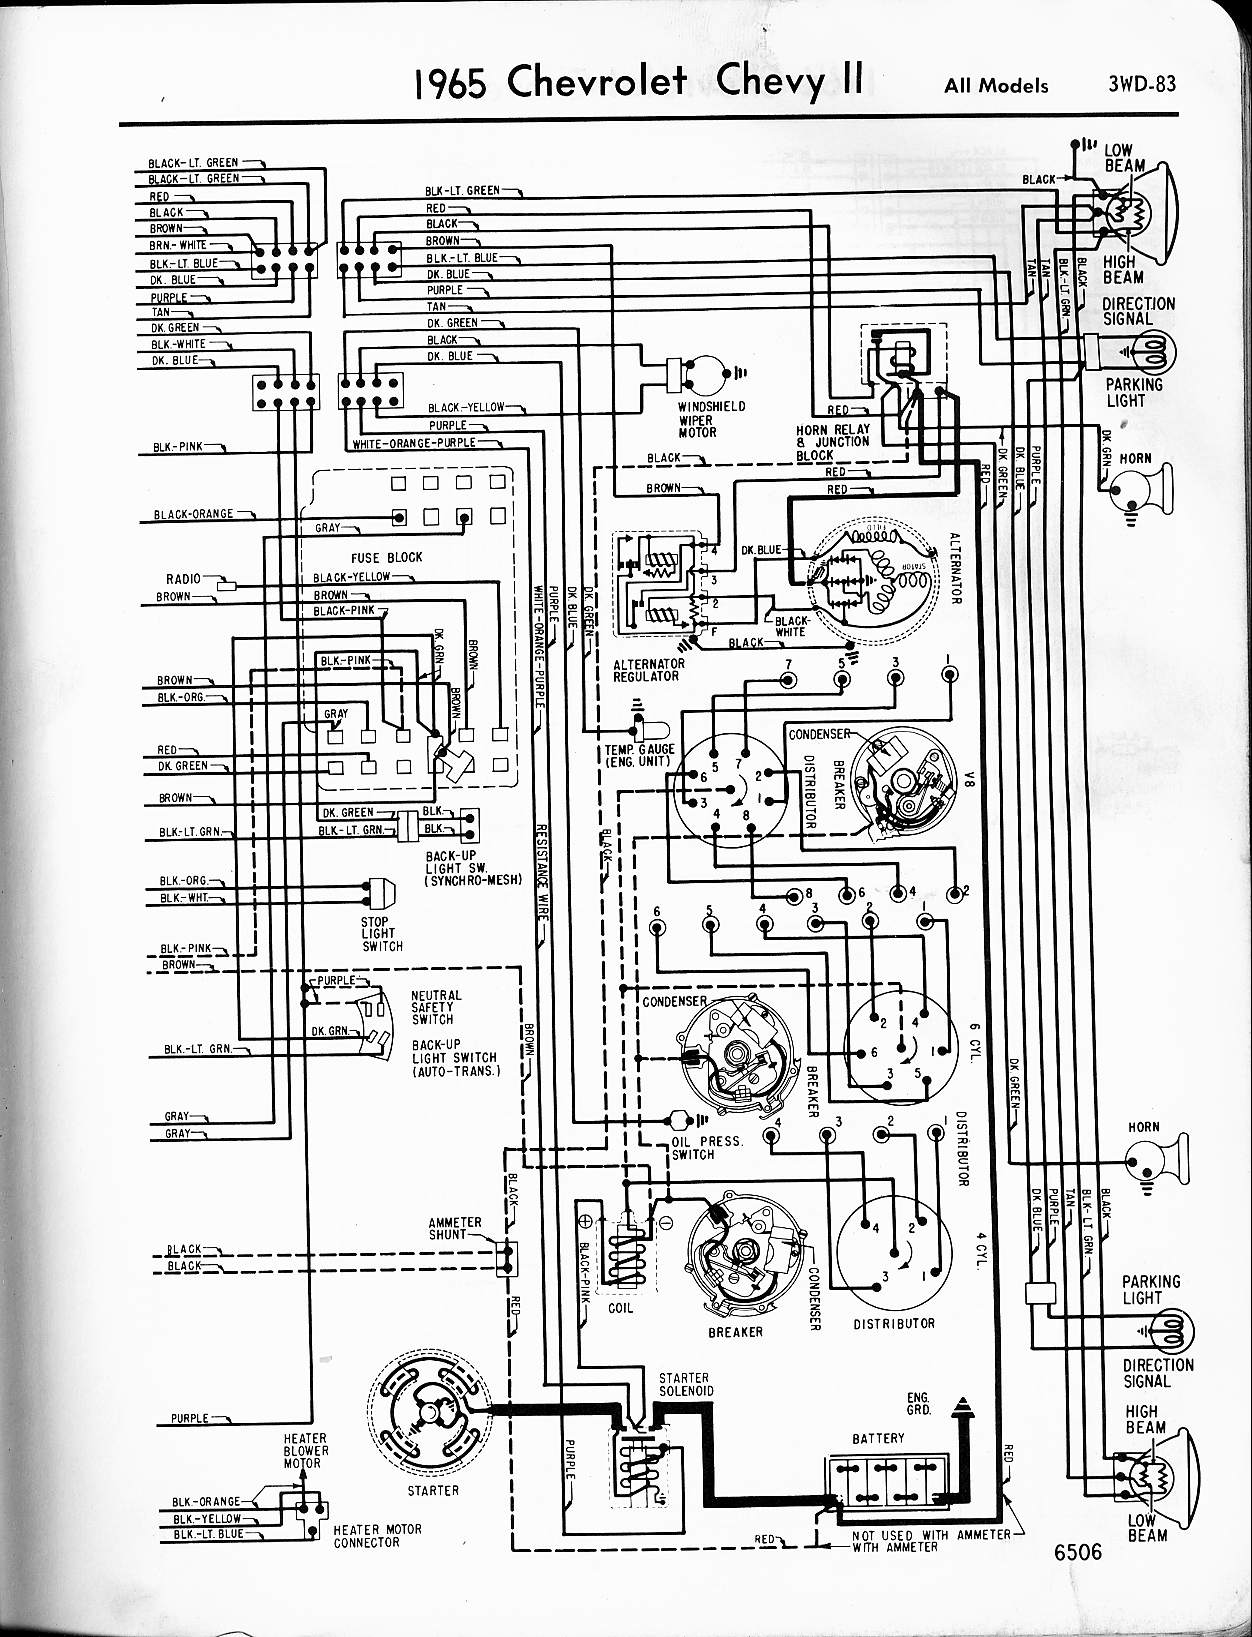 chevy diagrams General Motors Wiring Colors 1965 chevy ii wiring diagram figure a figure b